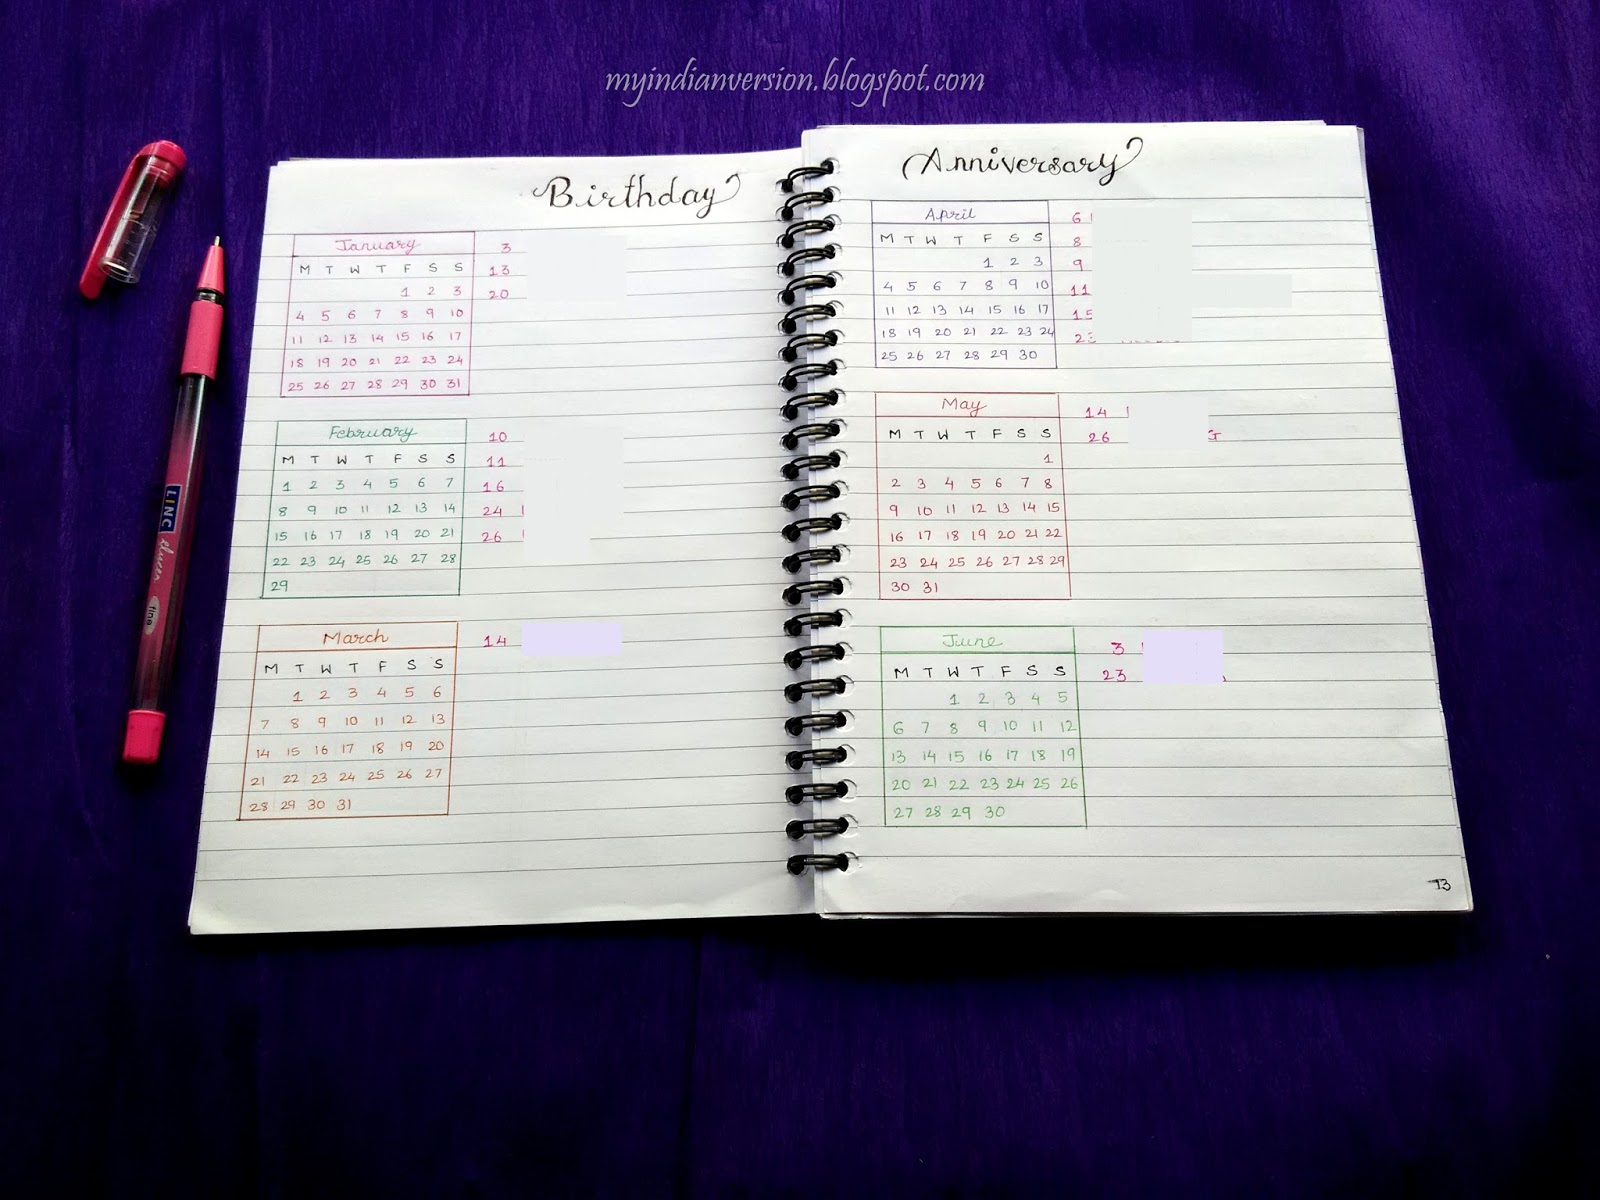 Yearly Calendar Bullet Journal : My indian version bullet journal yearly calendar and